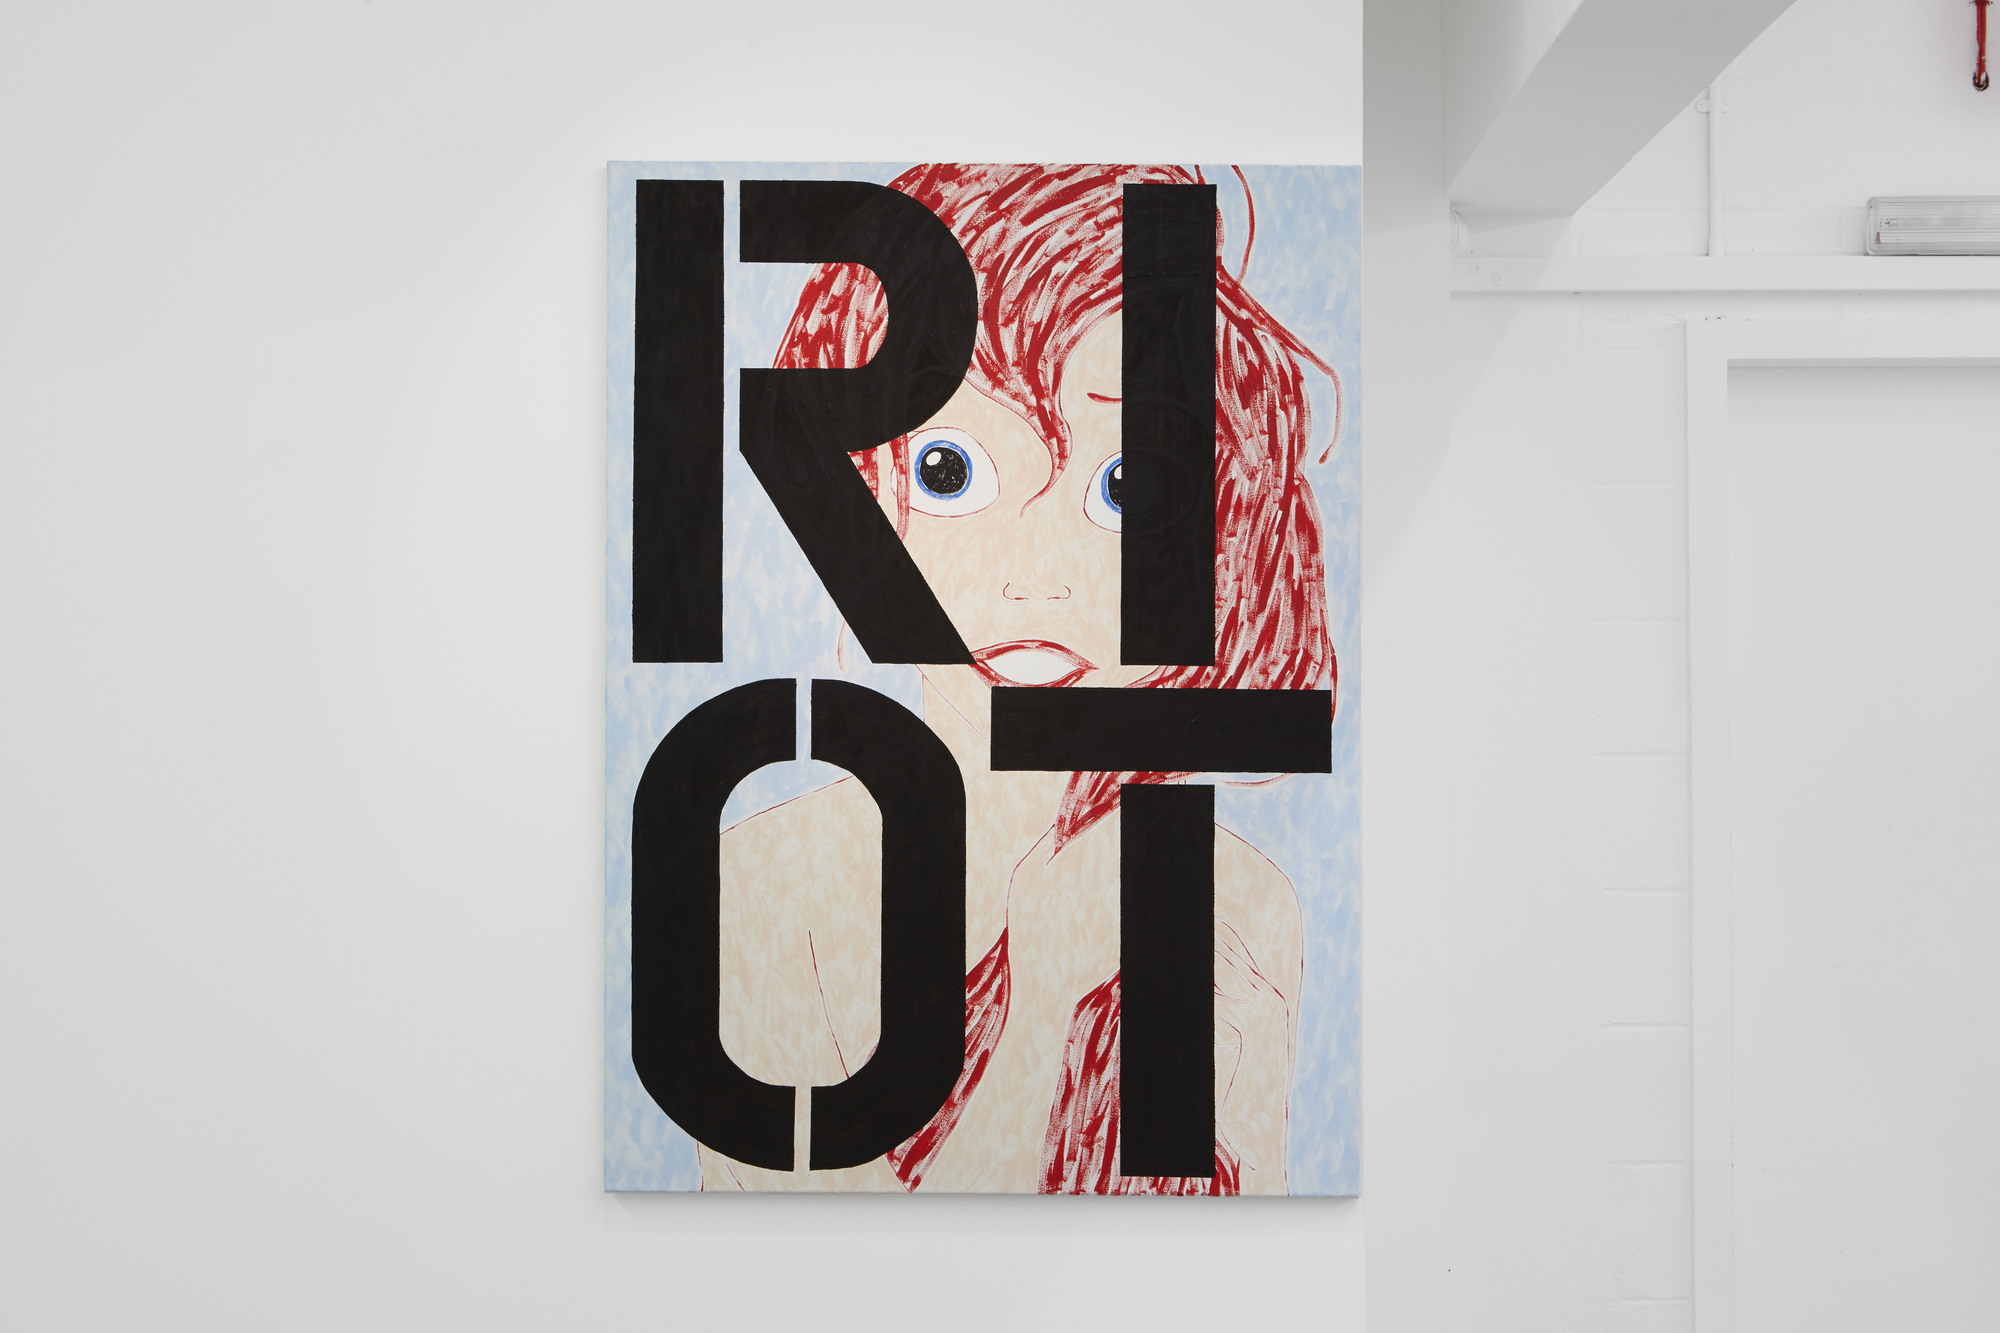 Ariel RIOT 2015 Oil on canvas 130x95cm Michael Pybus - Hubcap Smiley - Evelyn Yard - 2015 - 027